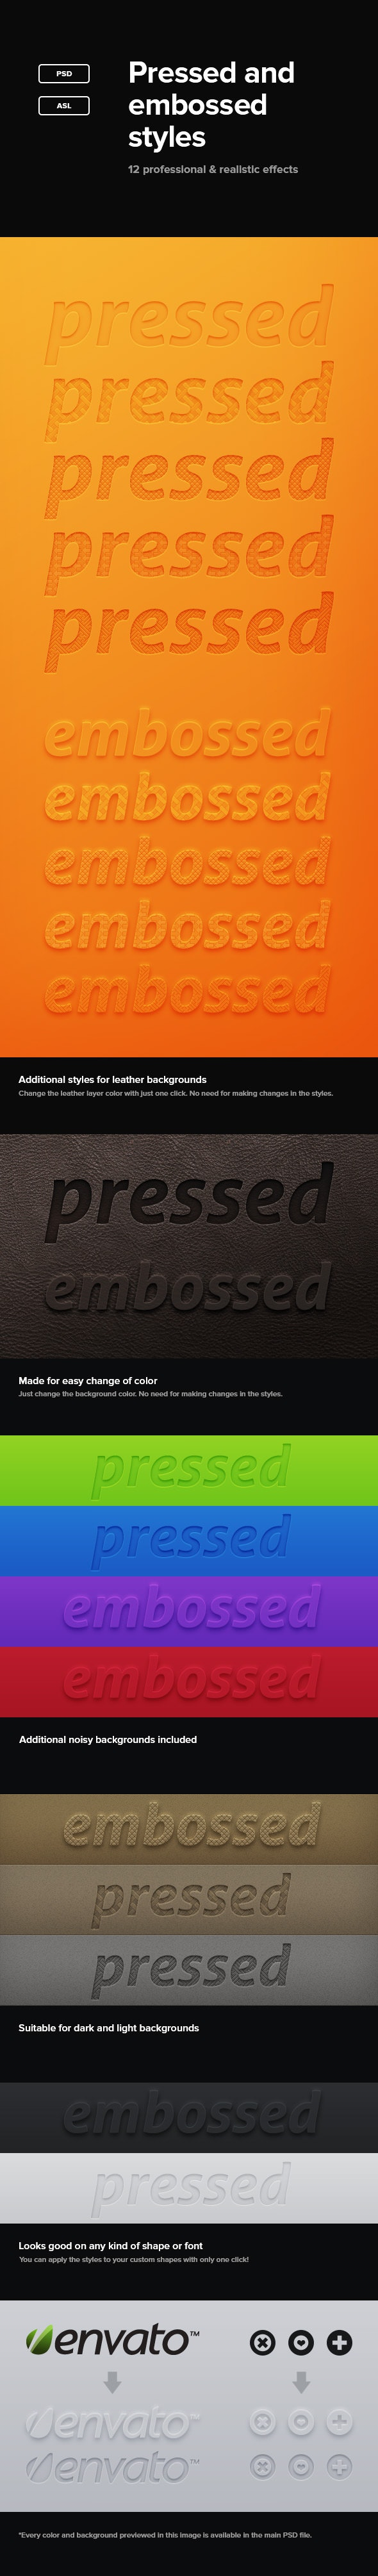 Pressed And Embossed Styles - Text Effects Styles